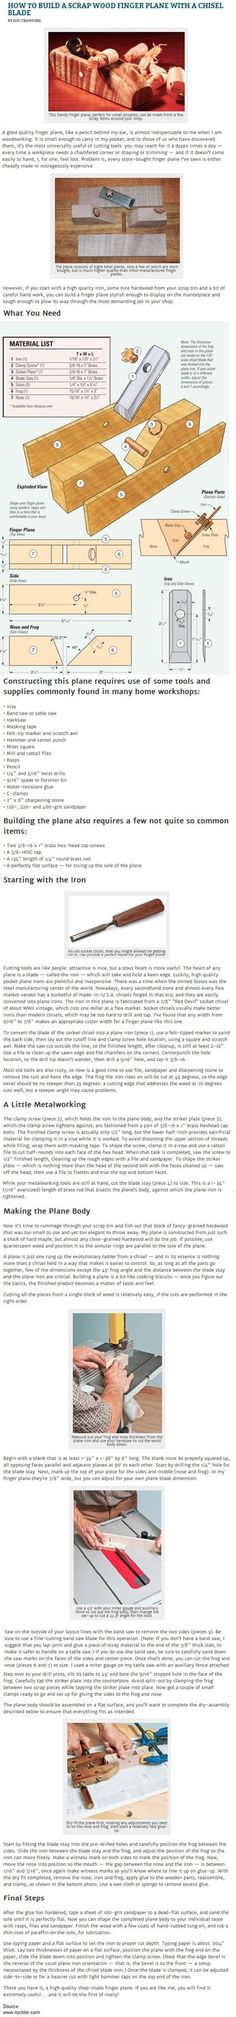 How to Build a Scrap Wood Finger Plane with a Chisel Blade